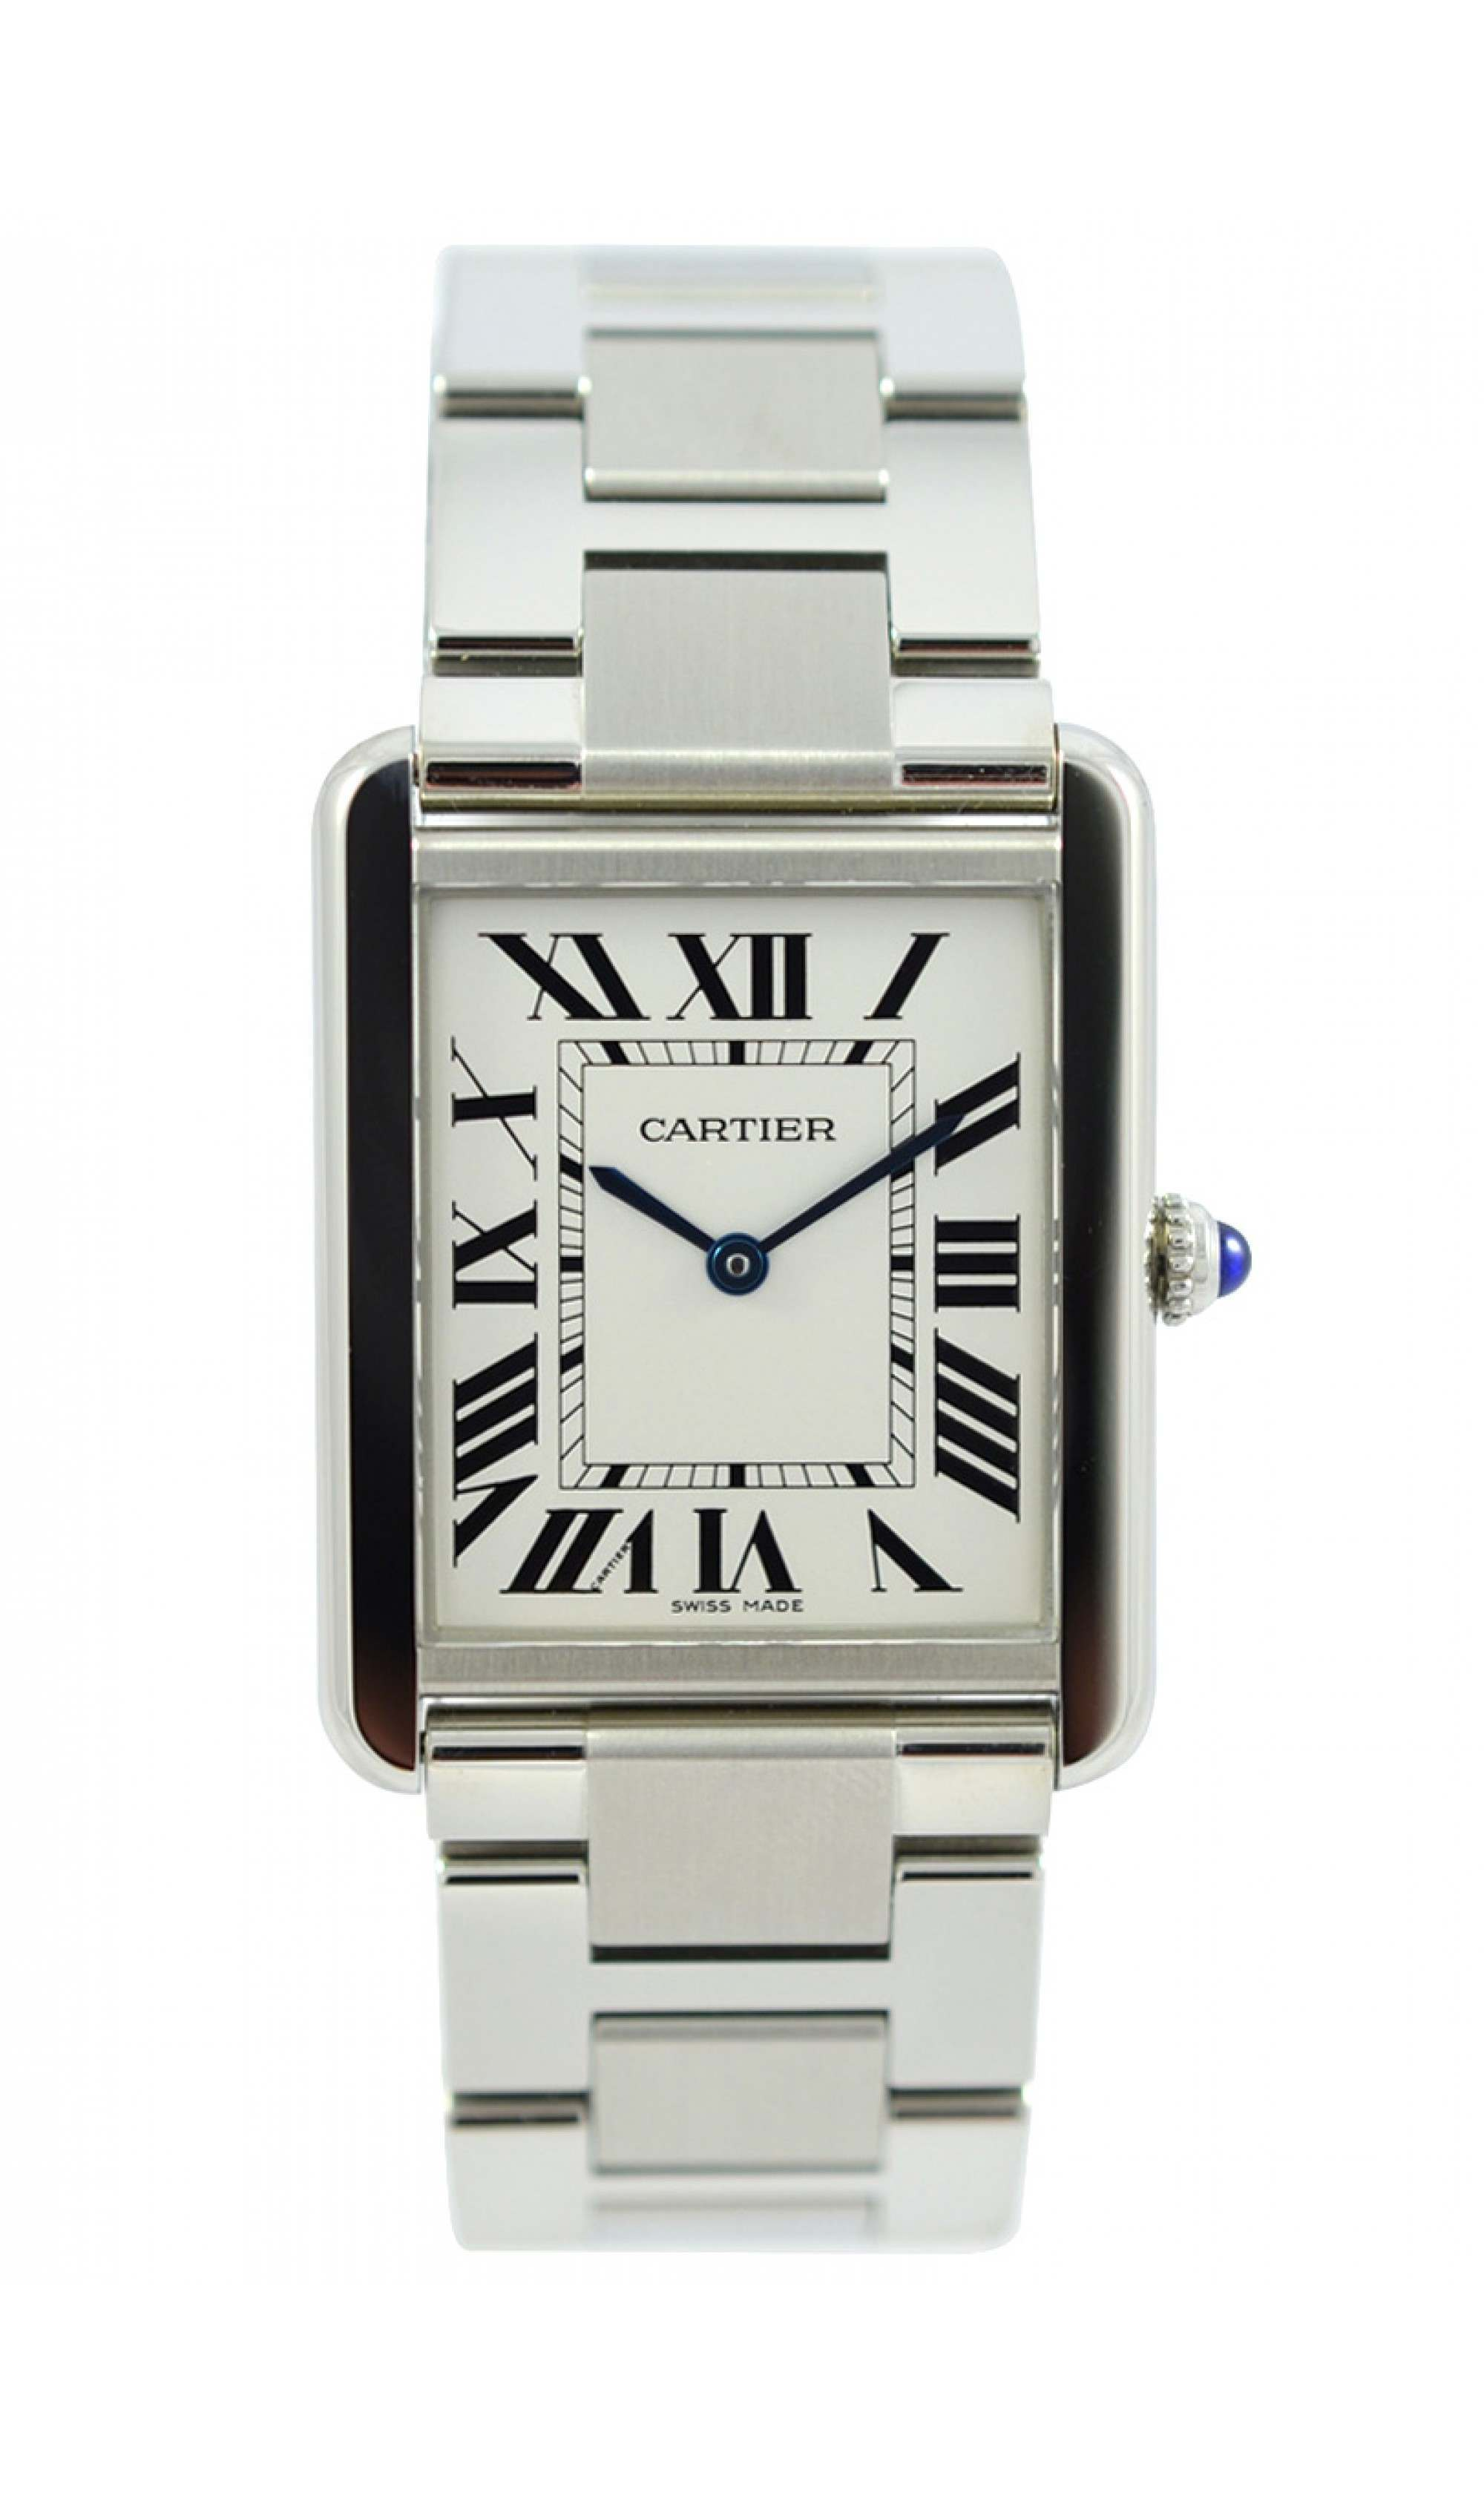 http://www.iconicwatches.co.uk/media/catalog/product/cache/1/image/2000x3360/9df78eab33525d08d6e5fb8d27136e95/w/5/w5200014_f_n_i.jpg